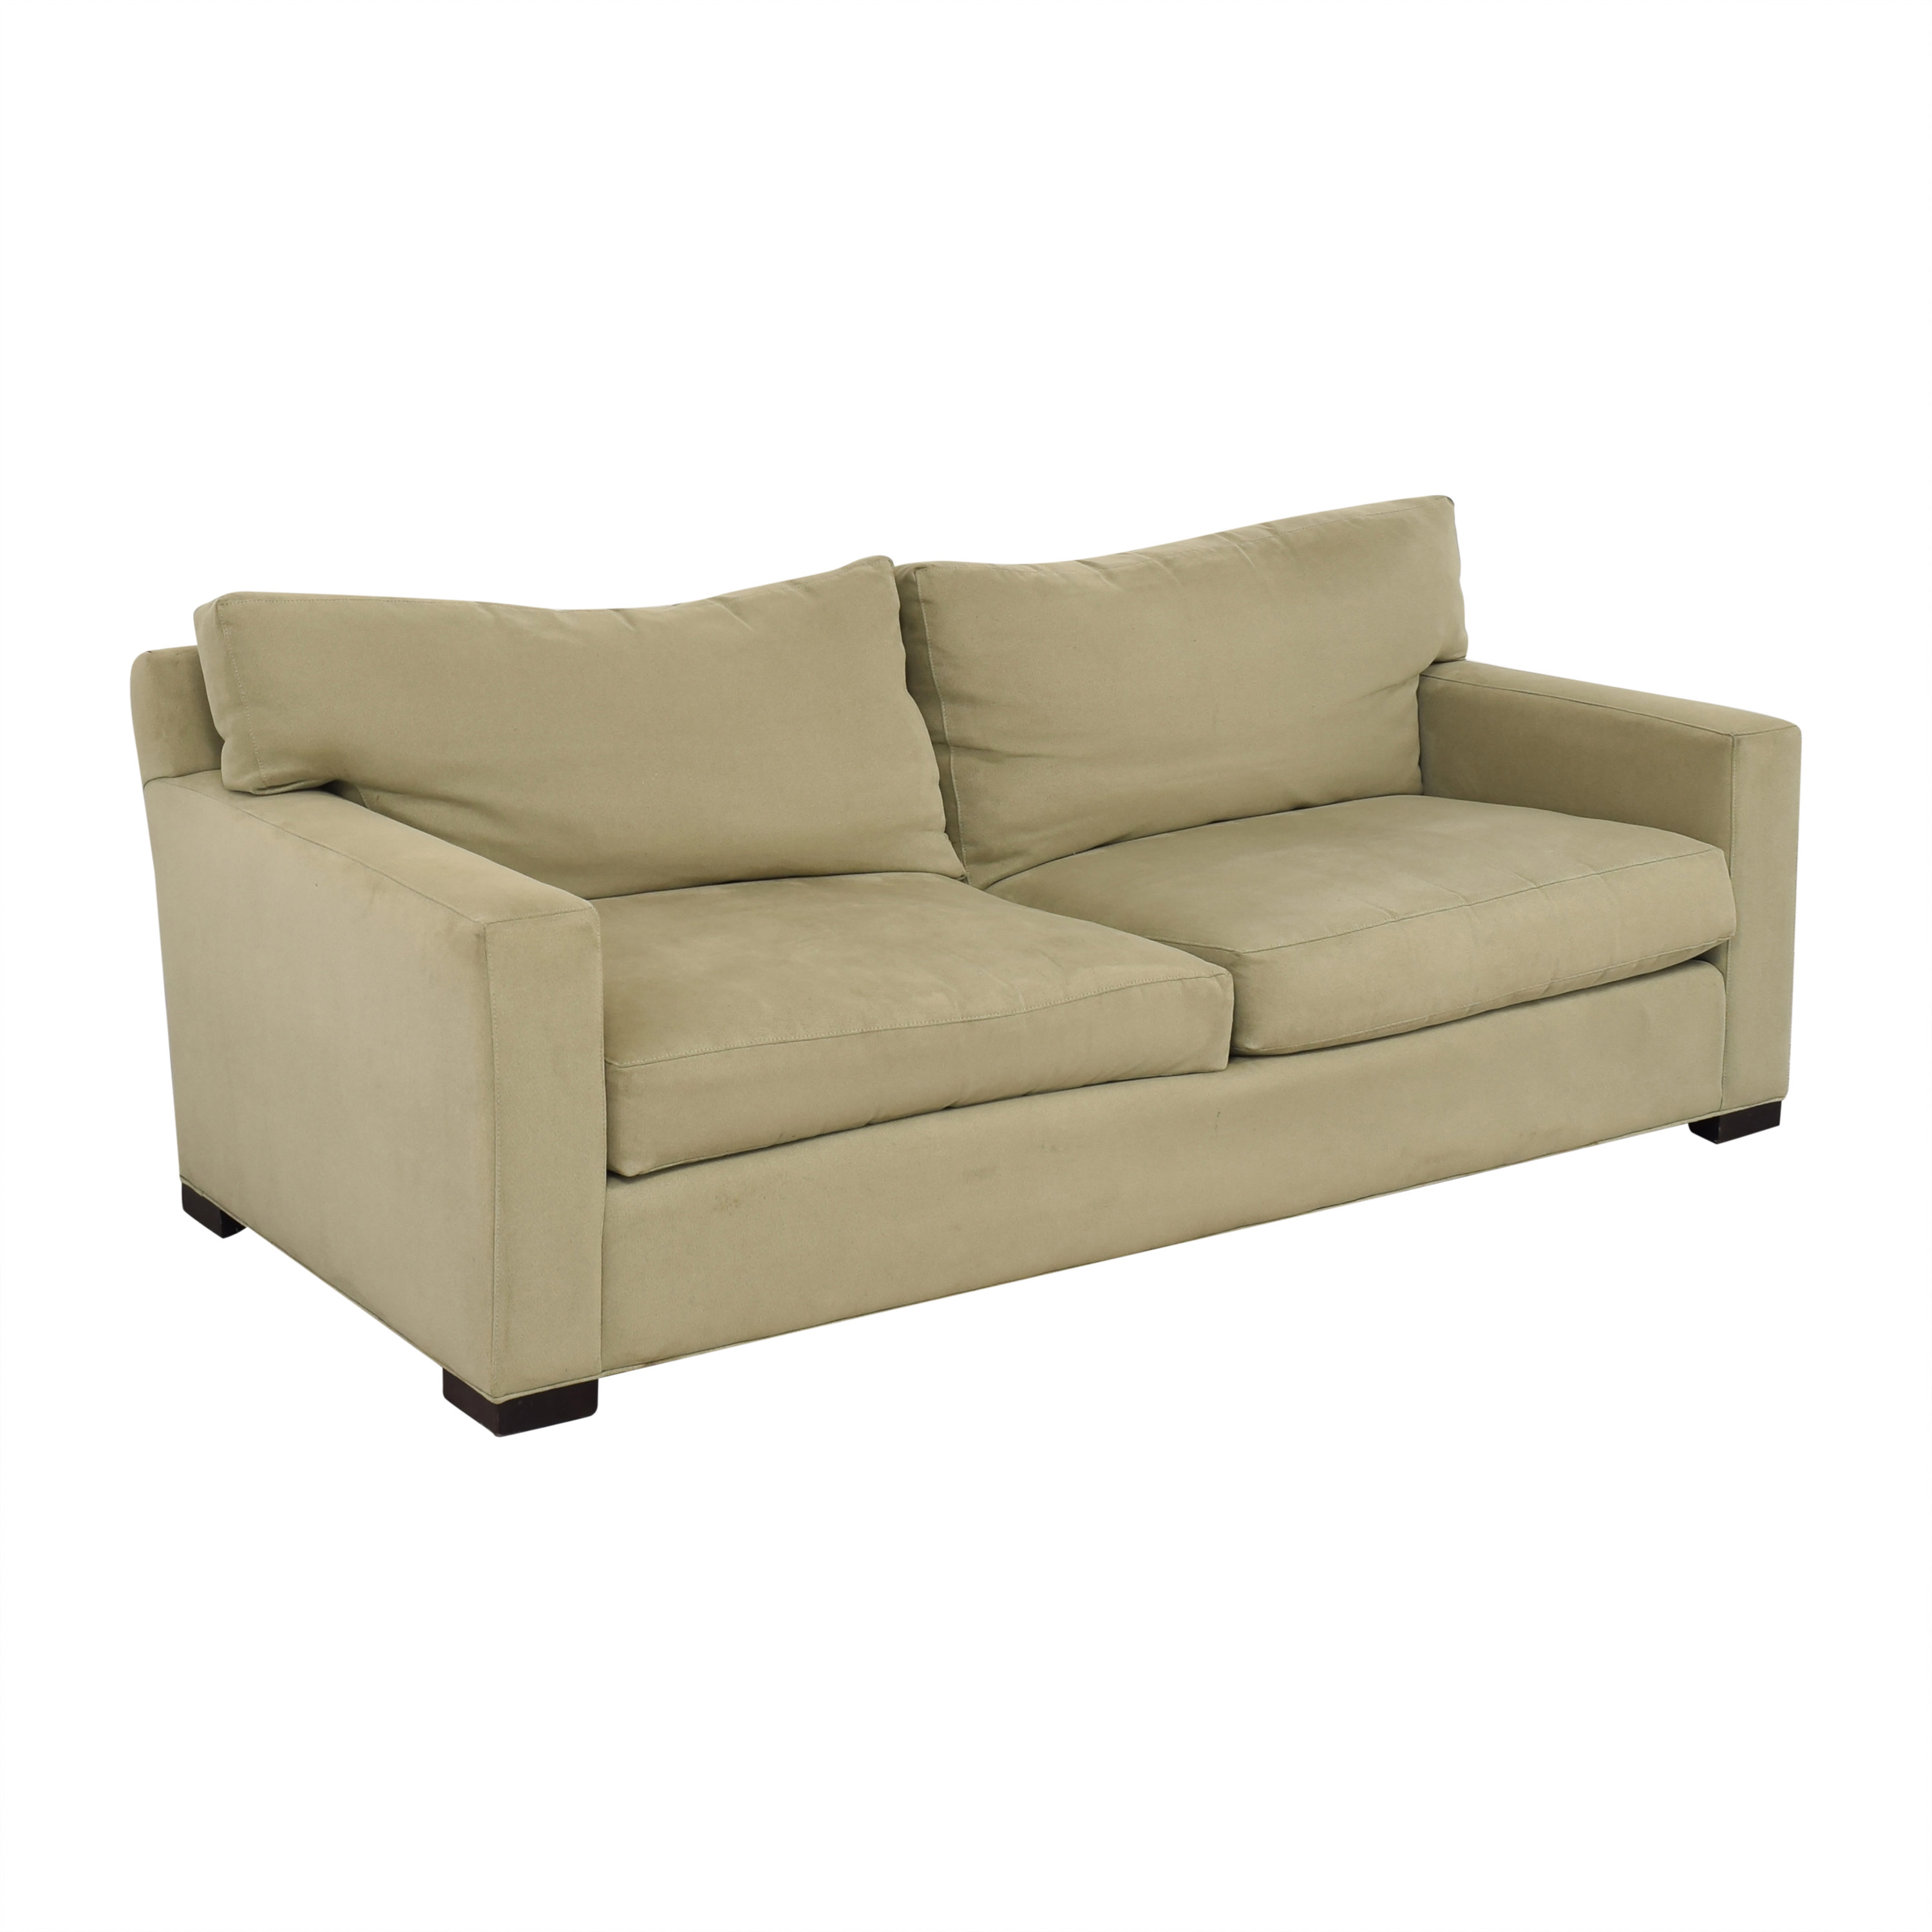 Crate & Barrel Crate & Barrel Axis II 2 Seat Sofa price